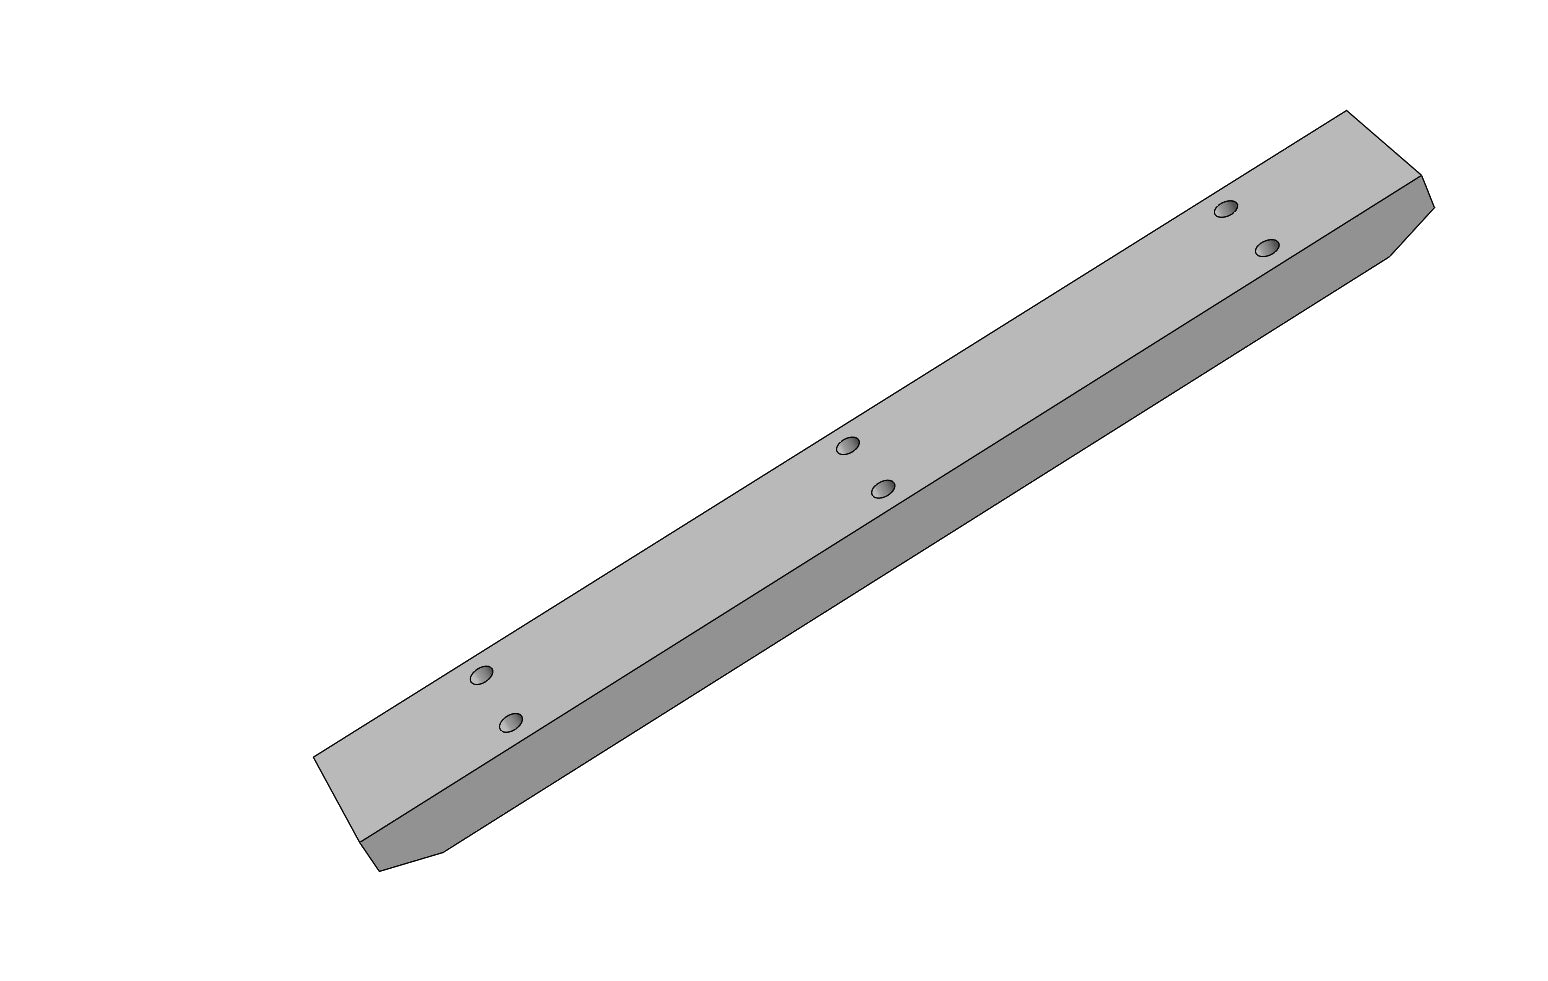 SCM 15644 - VIBRATOR BAR | Spare Parts for King, Kalish and Swiftpack Packaging Machines